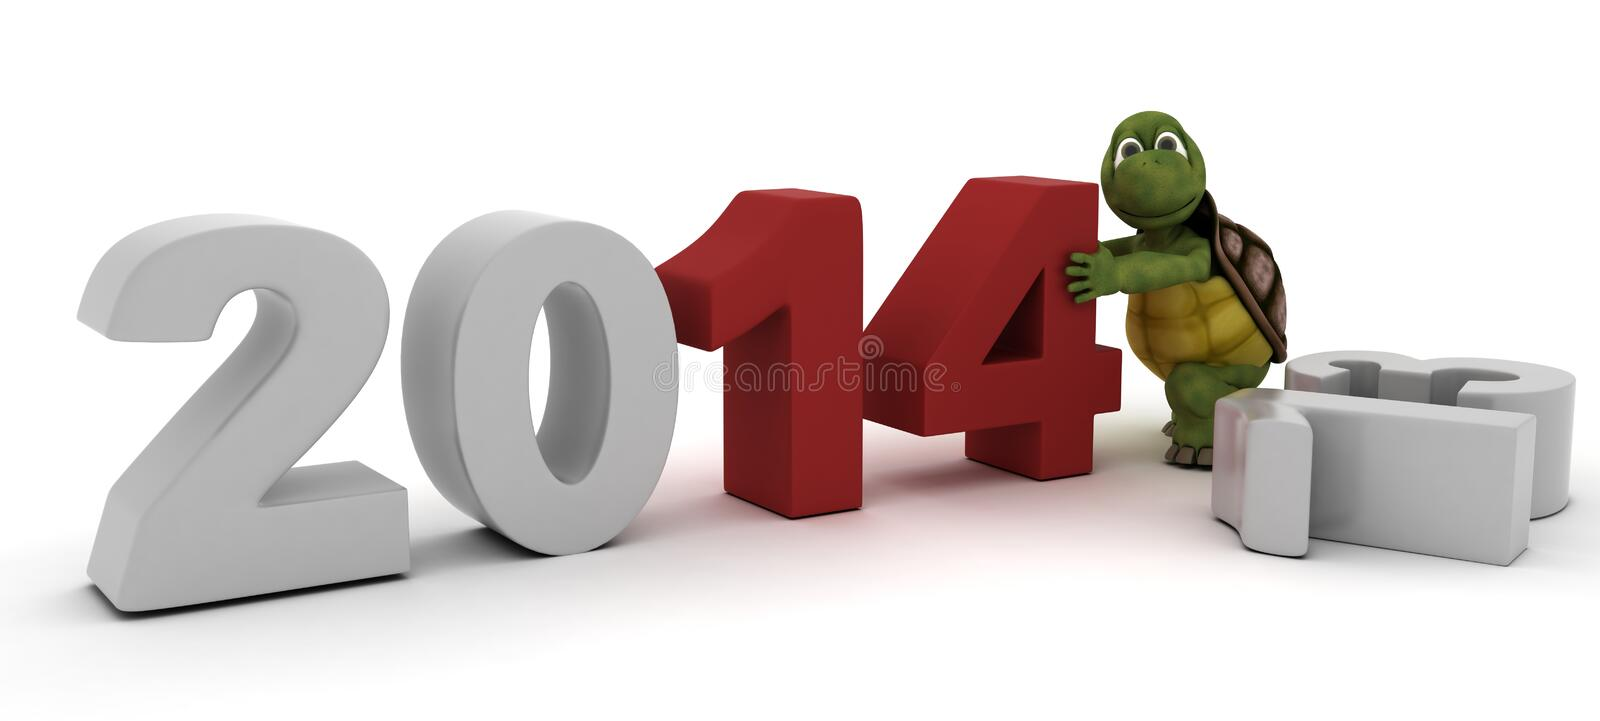 Tortoise Bringing In The New Year Stock Images